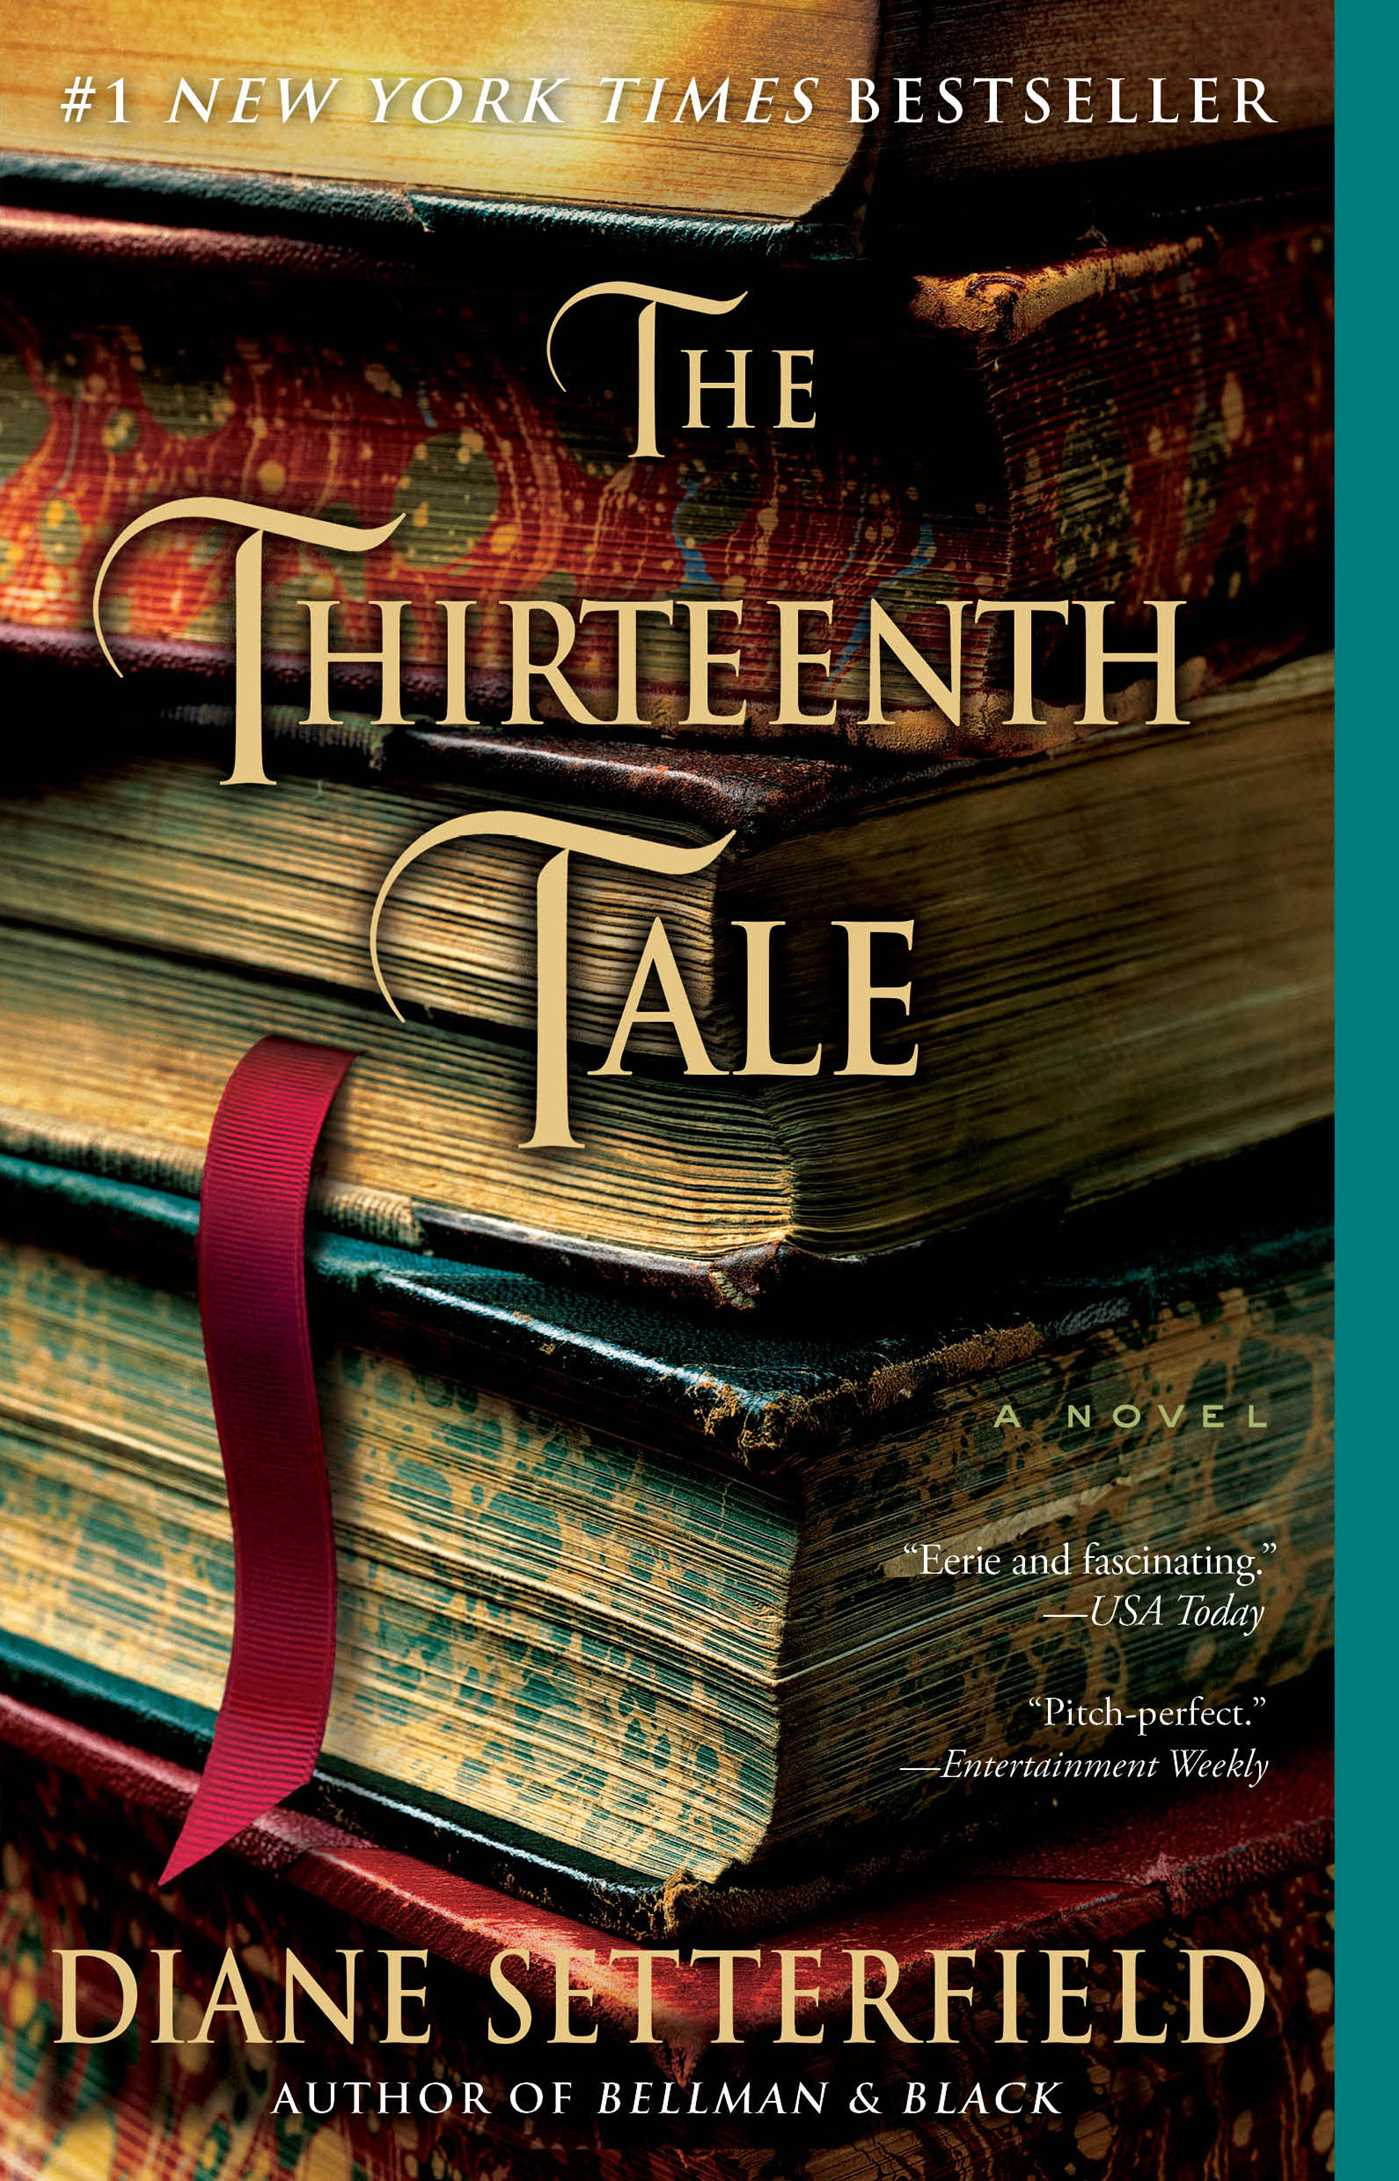 The thirteenth tale 9780743298032 hr